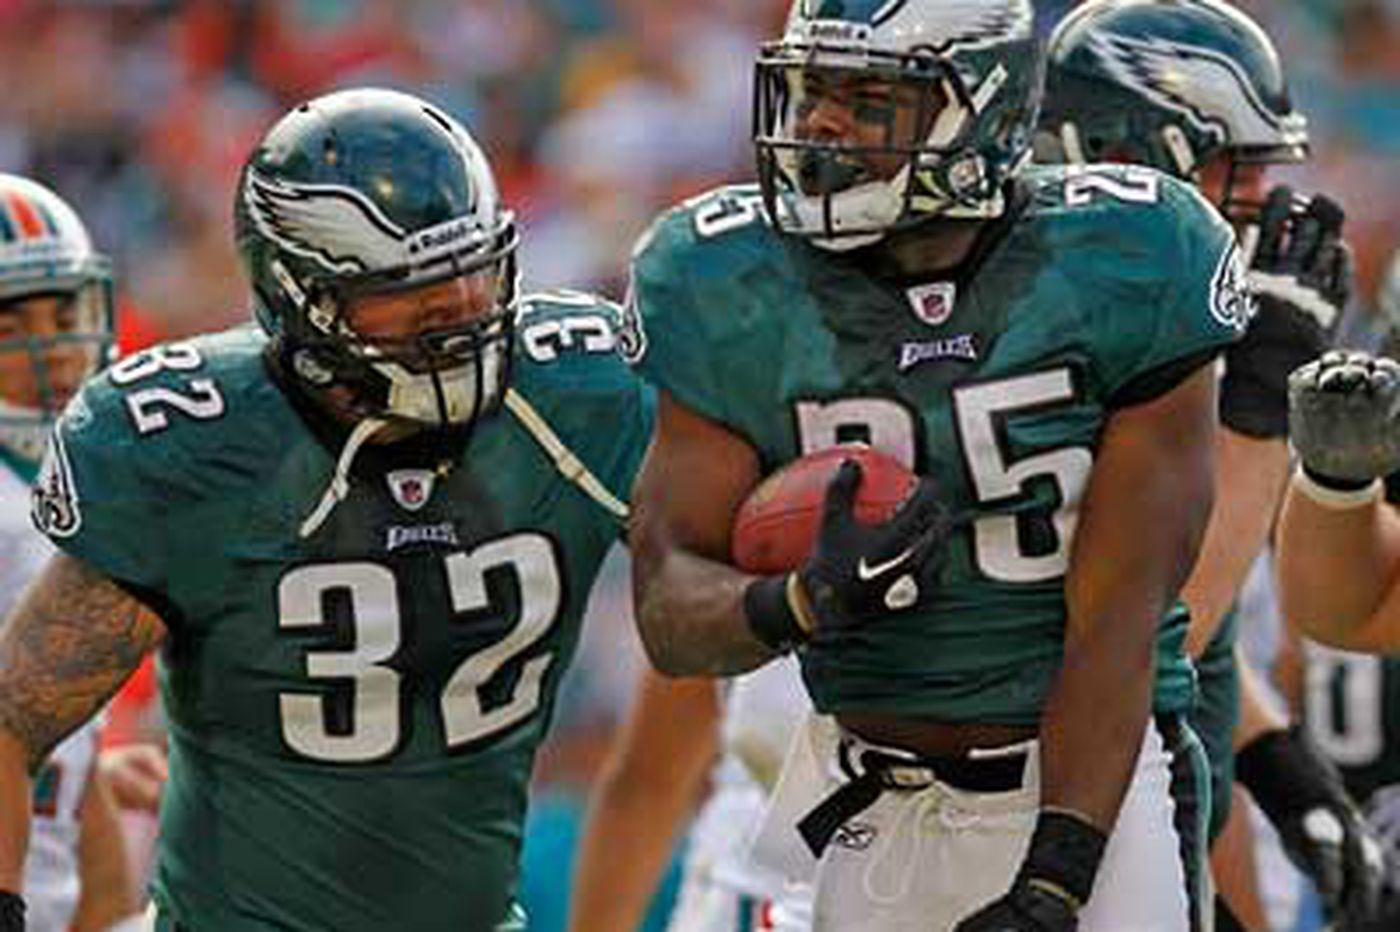 Paul Domowitch: Shady toughens up for Eagles